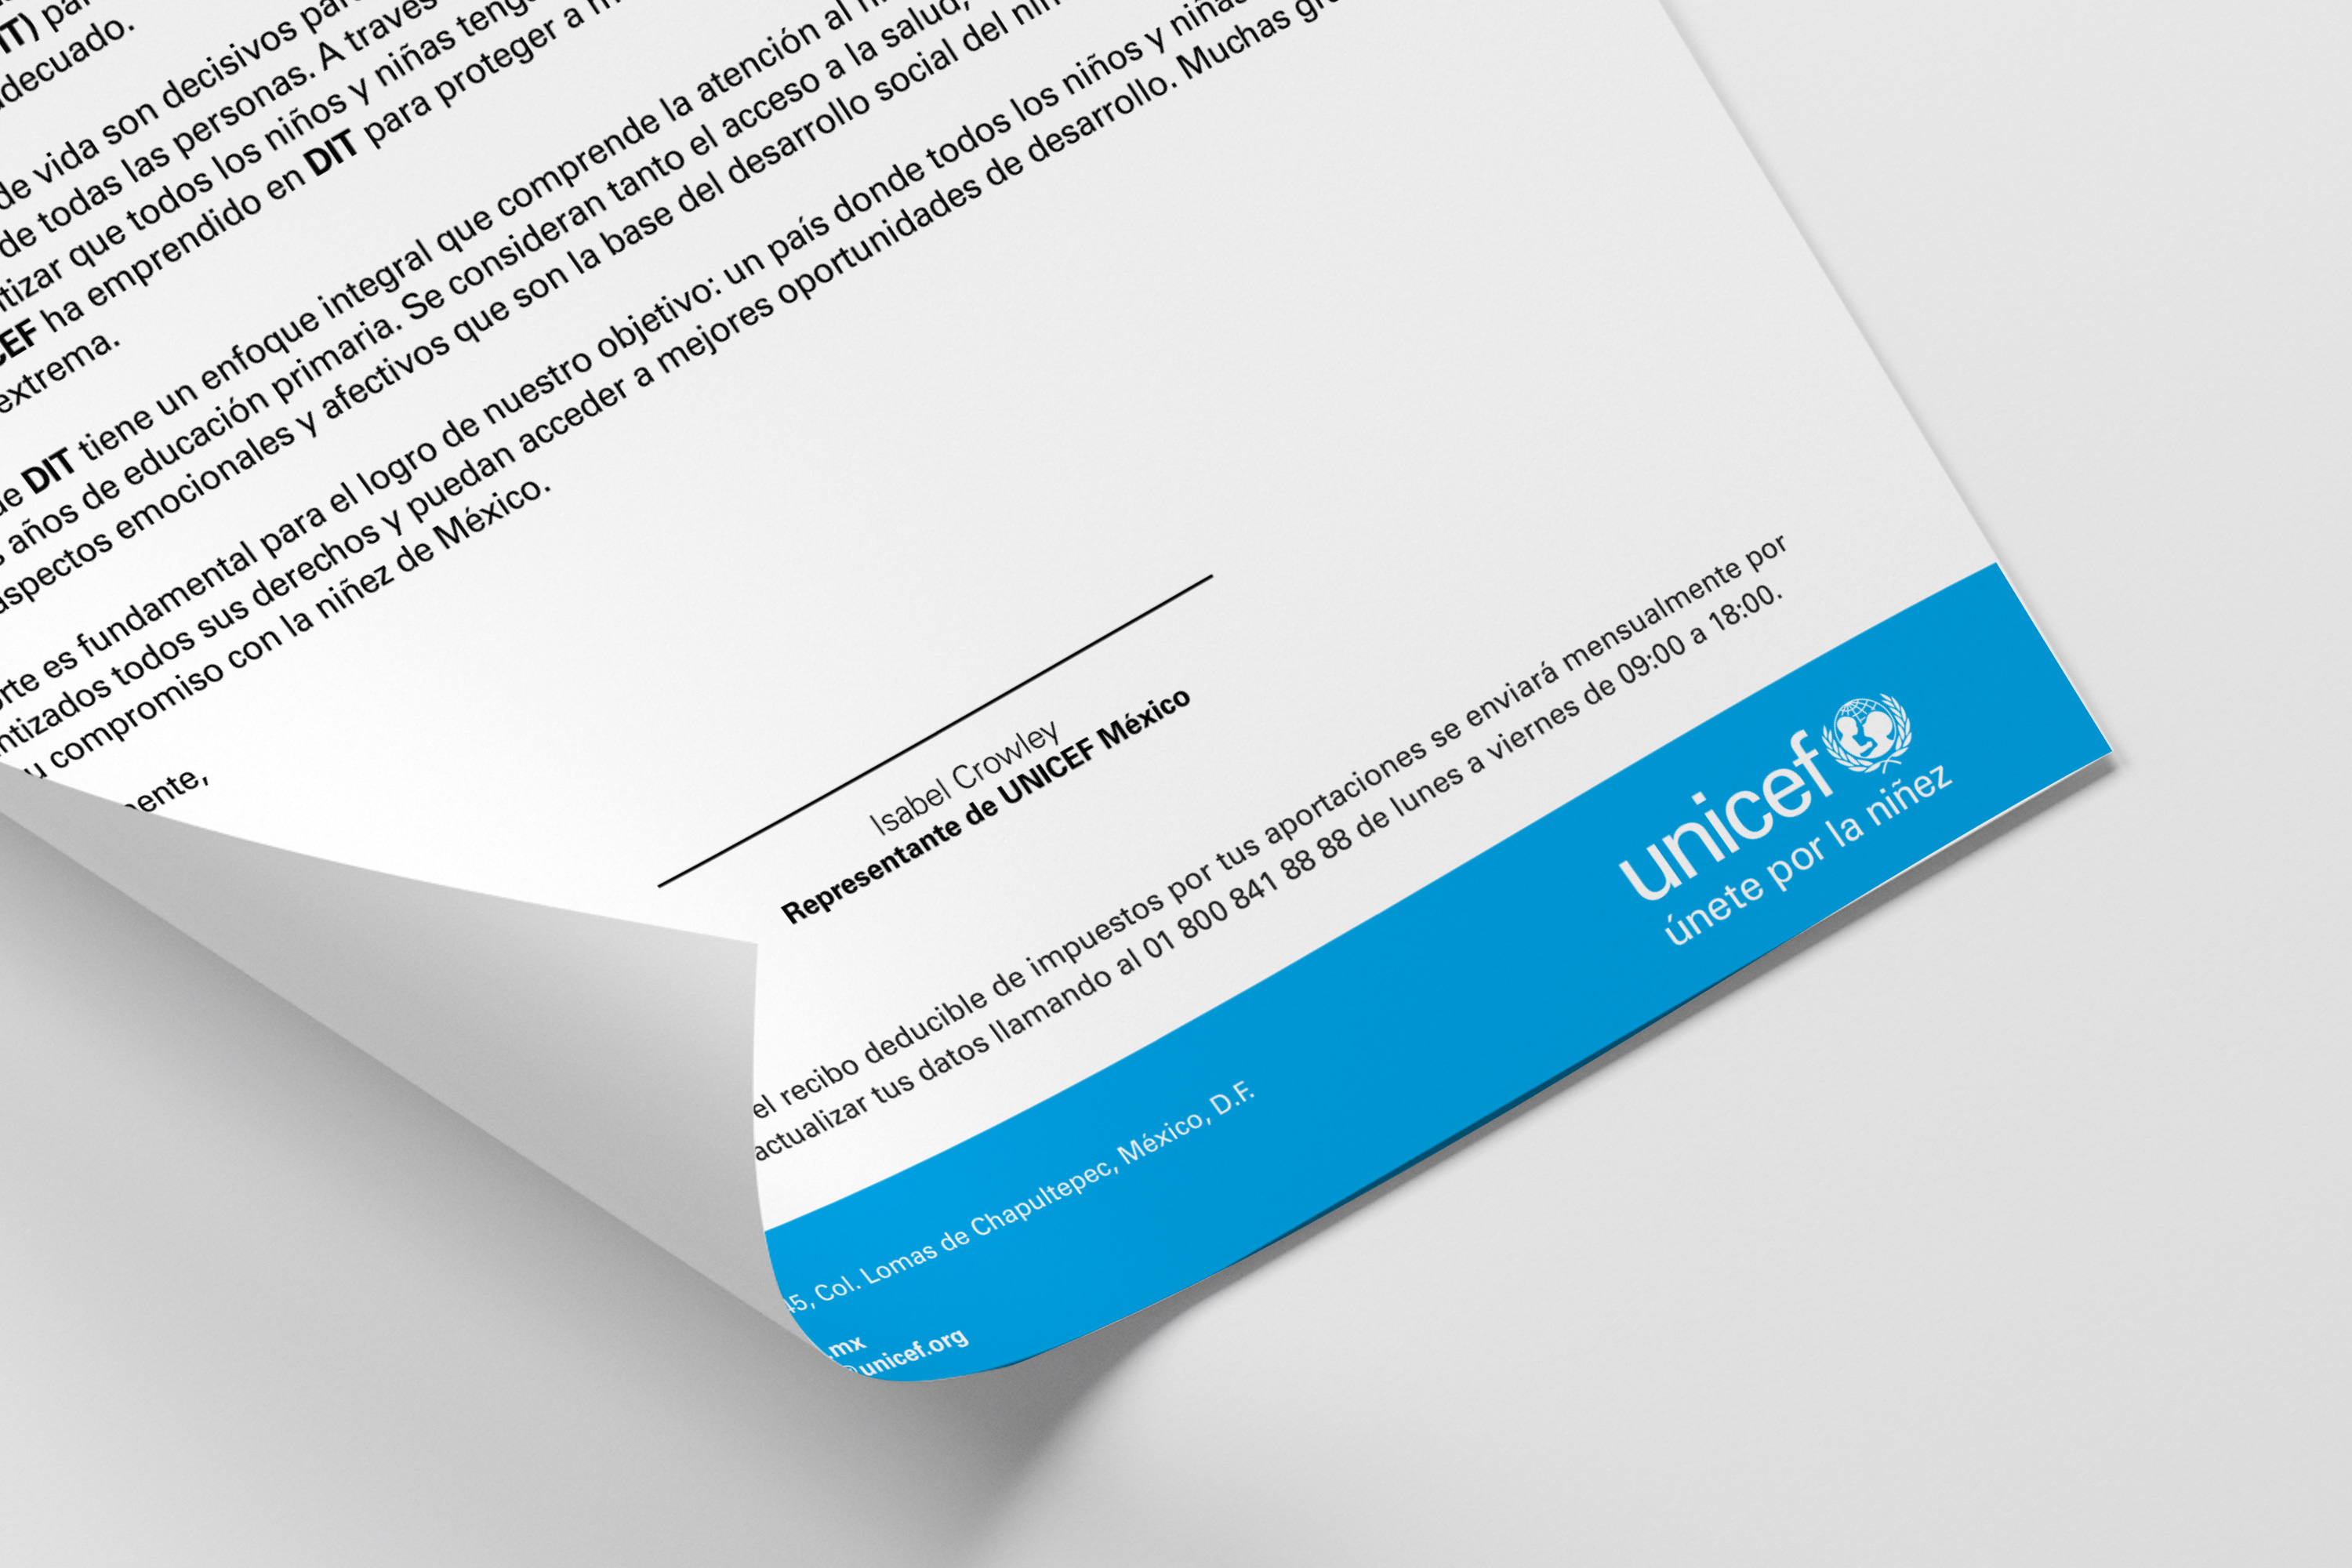 UNICEF-2-Informe-Anual-04